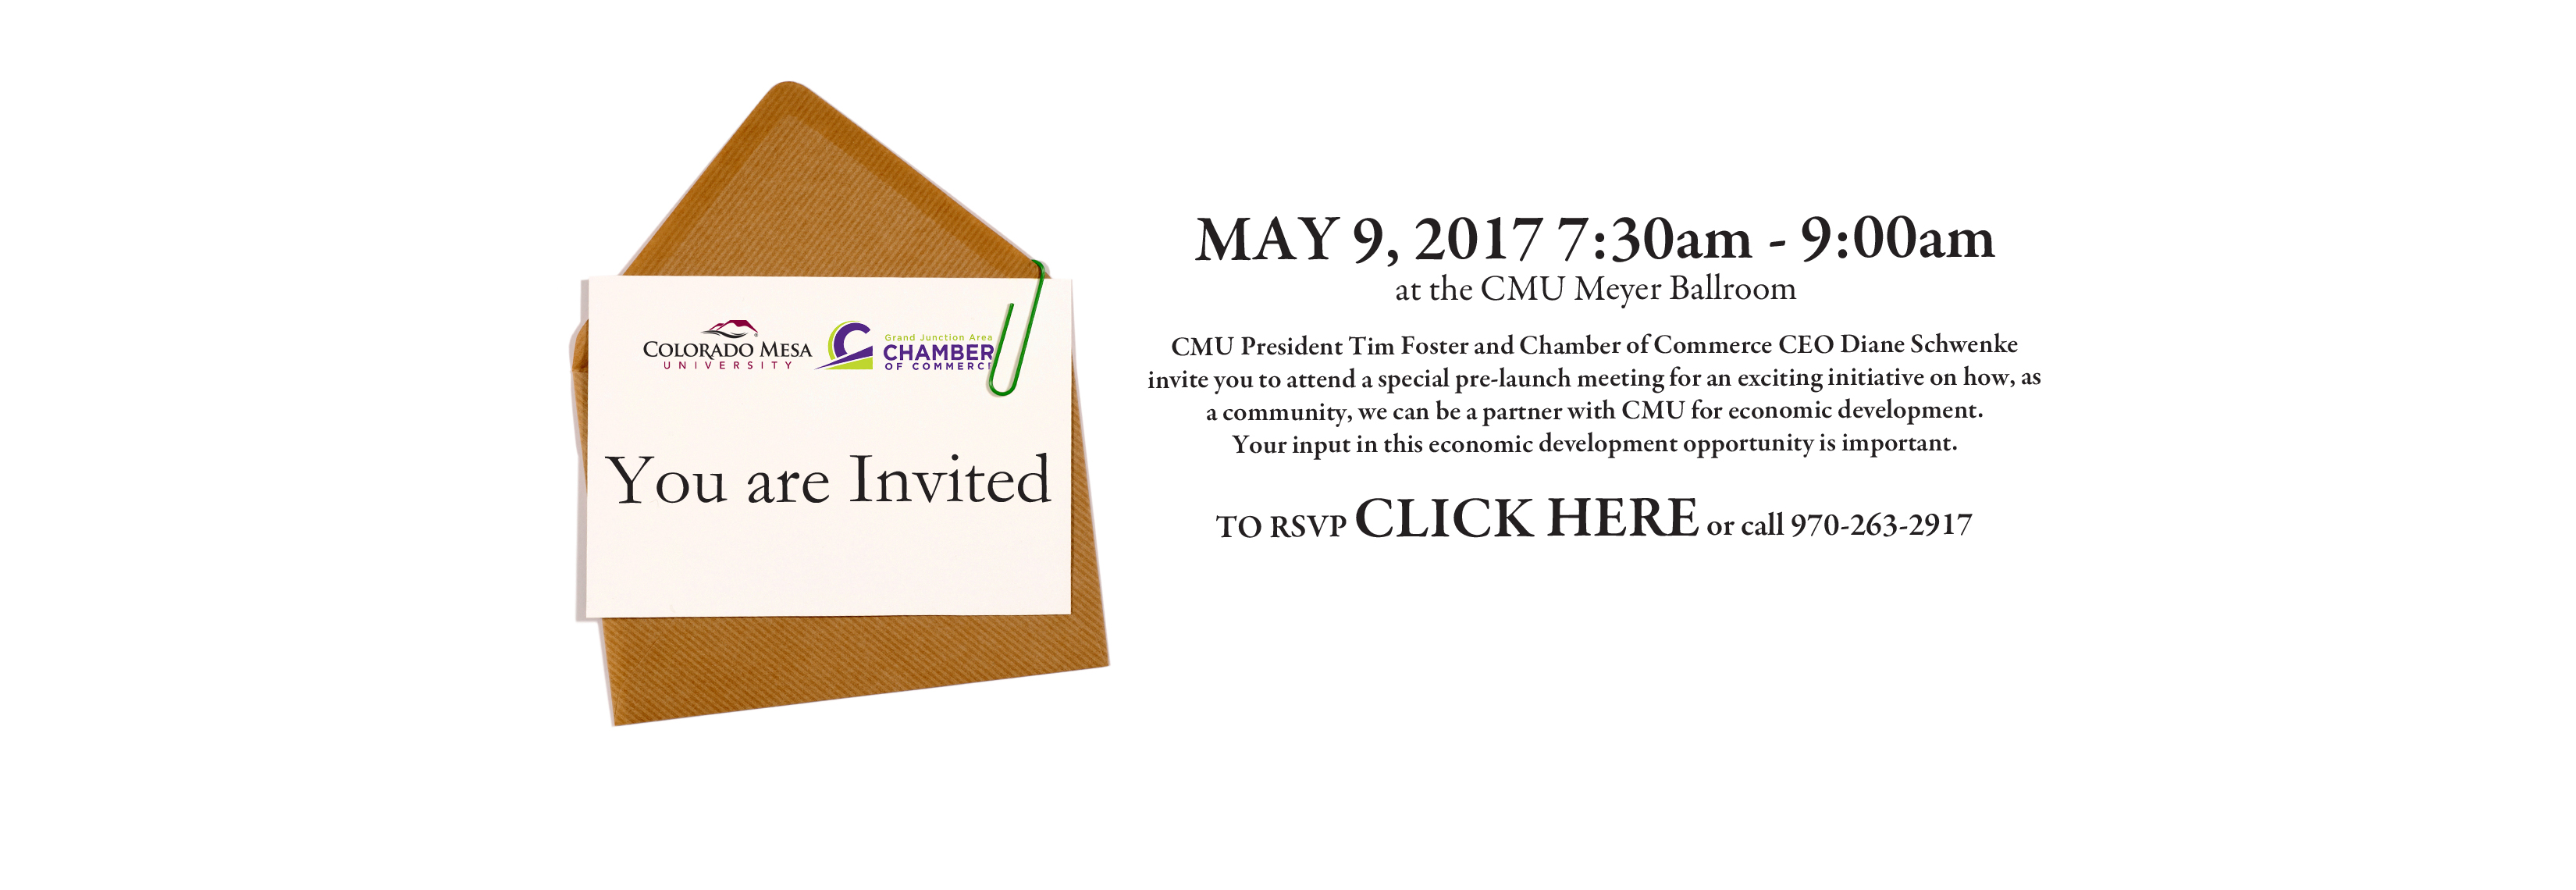 Colorado Mesa University Inviation, May 9, 2017, 7:30 AM at CMU Meyers Ballroon